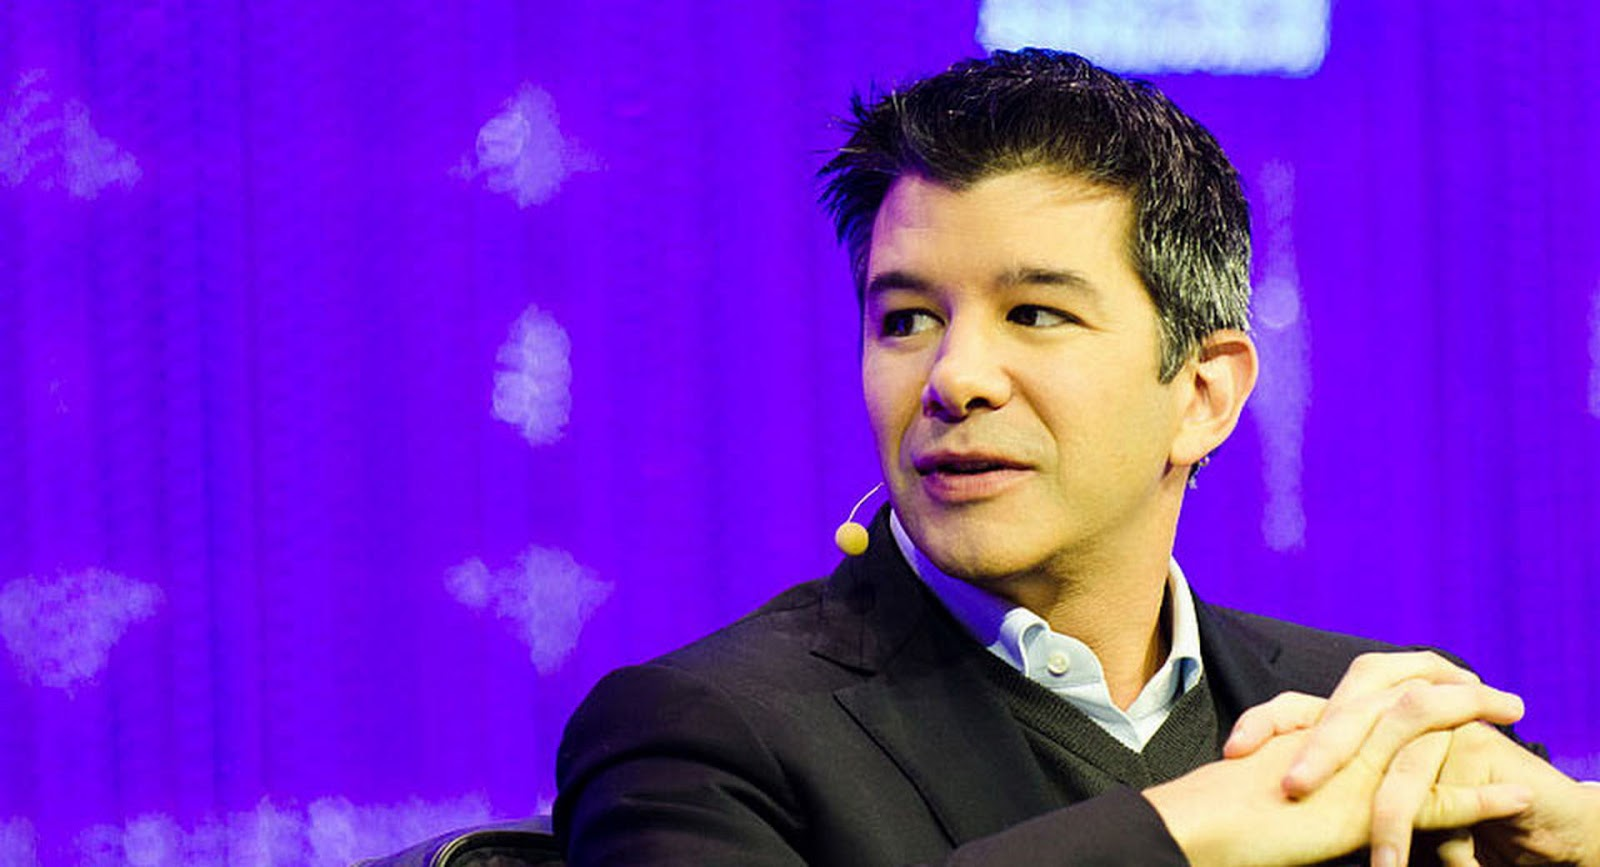 Kalanick to sell 29% of his stake in Uber amid SoftBank deal